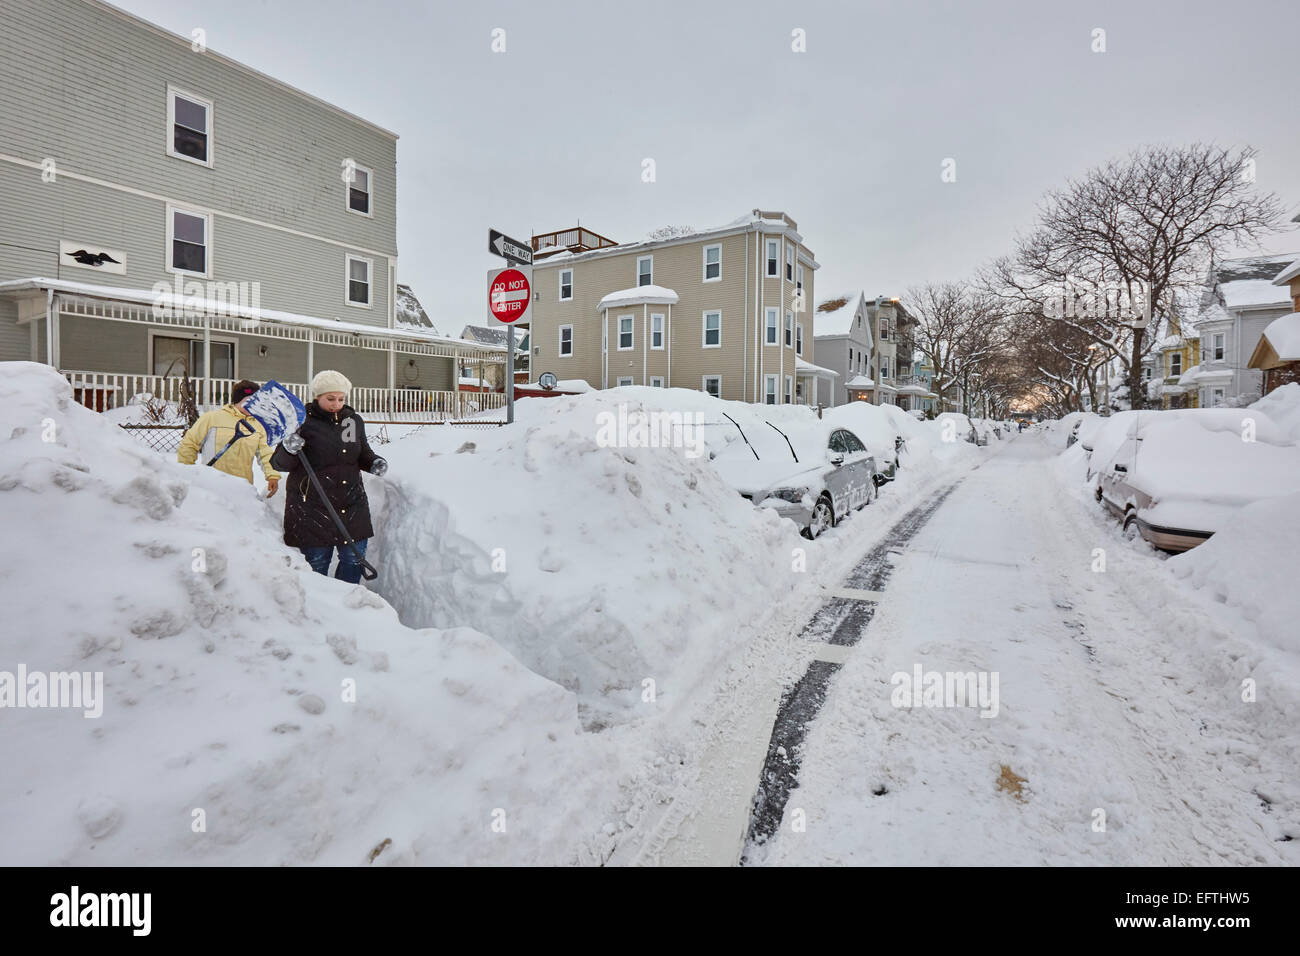 Boston, MA, US. 10th February, 2015. Aftermath of Snow storm Marcus. Credit:  MJ Photography/Alamy Live News - Stock Image